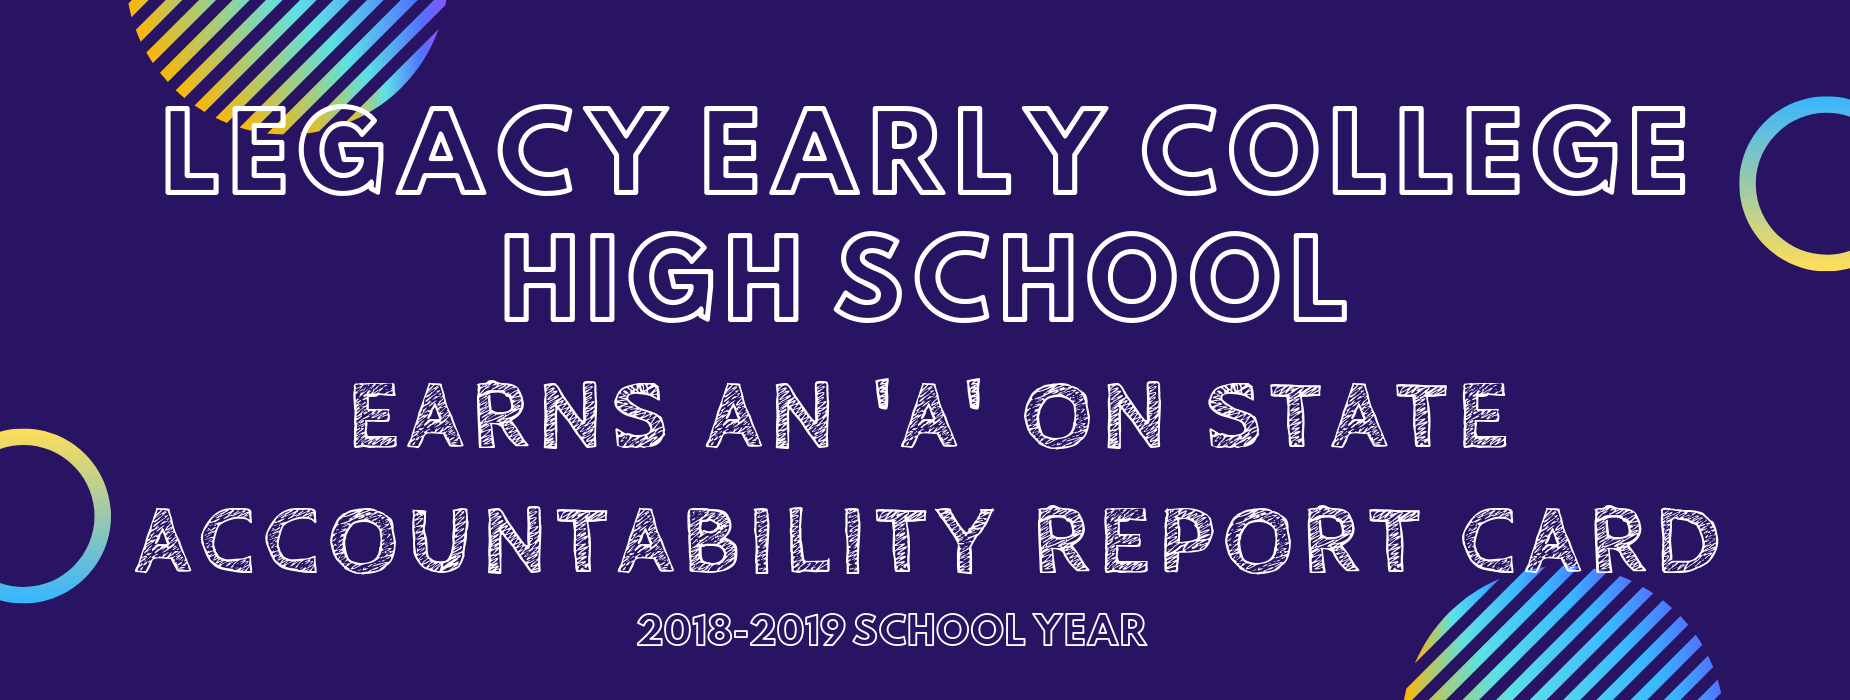 LEGACY EARLY COLLEGE HIGH SCHOOL EARNED AN 'A' RATING ON STATE ACCOUNTABILITY REPORT CARD FOR THE 2018-2019 SCHOOL YEAR